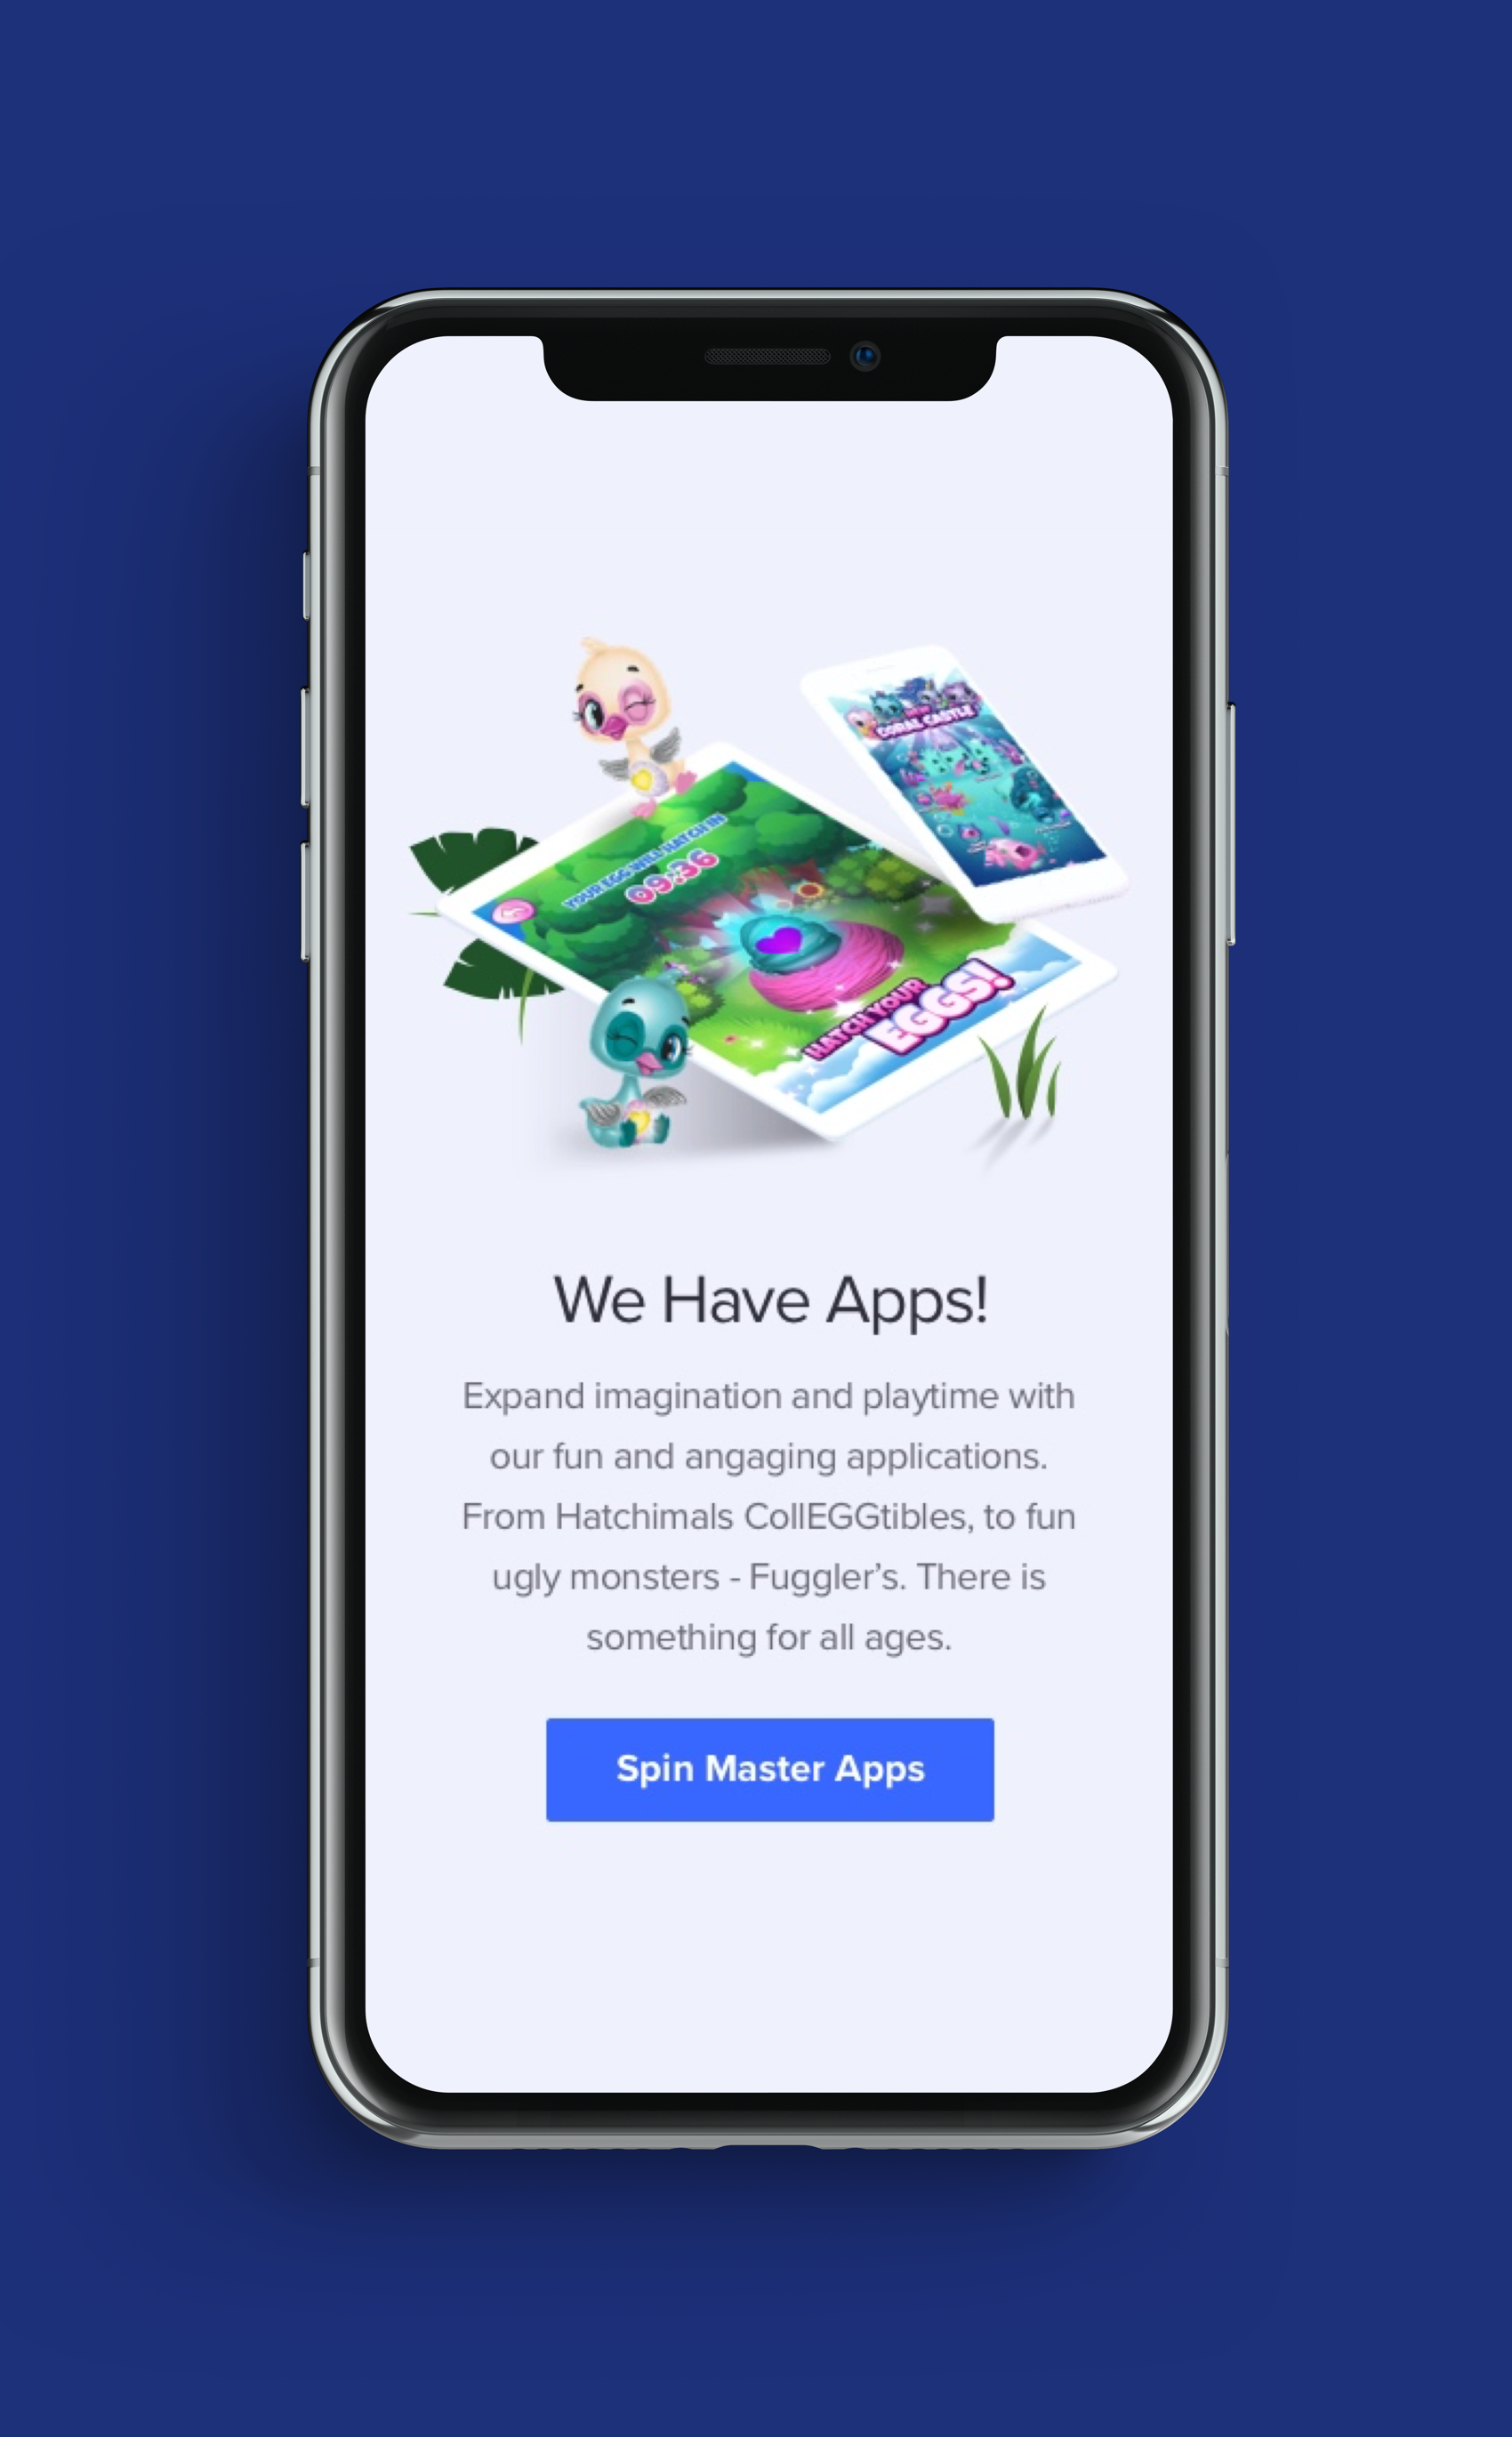 Spin Master Home Page Design - Second Concept for Mobile4